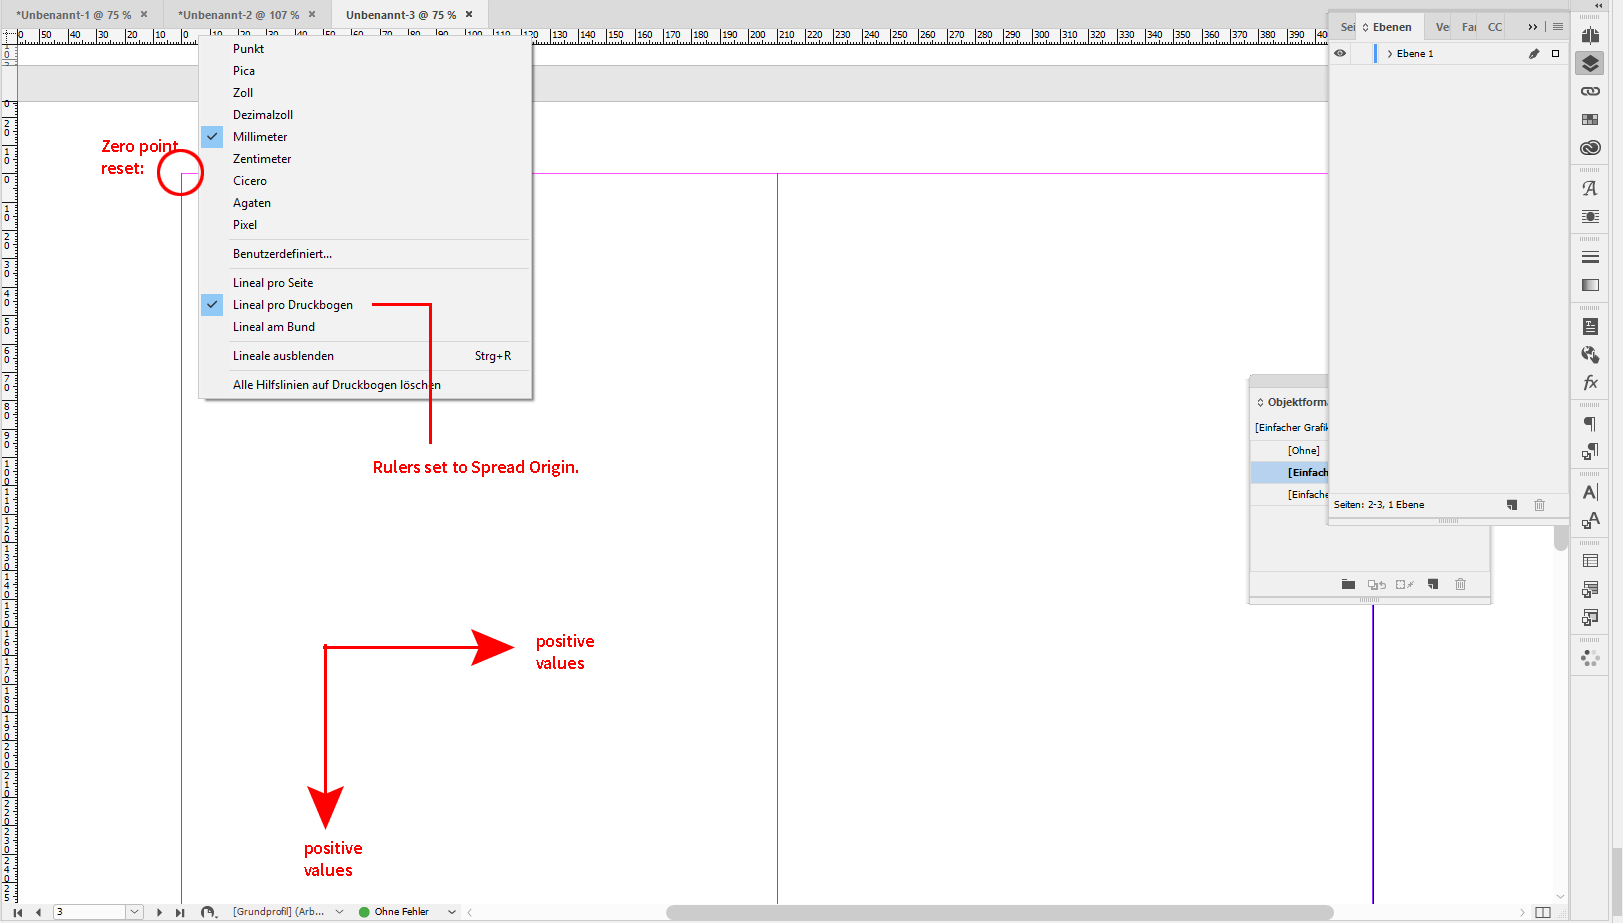 Need help resetting ruler zero-point InDesign CC 2